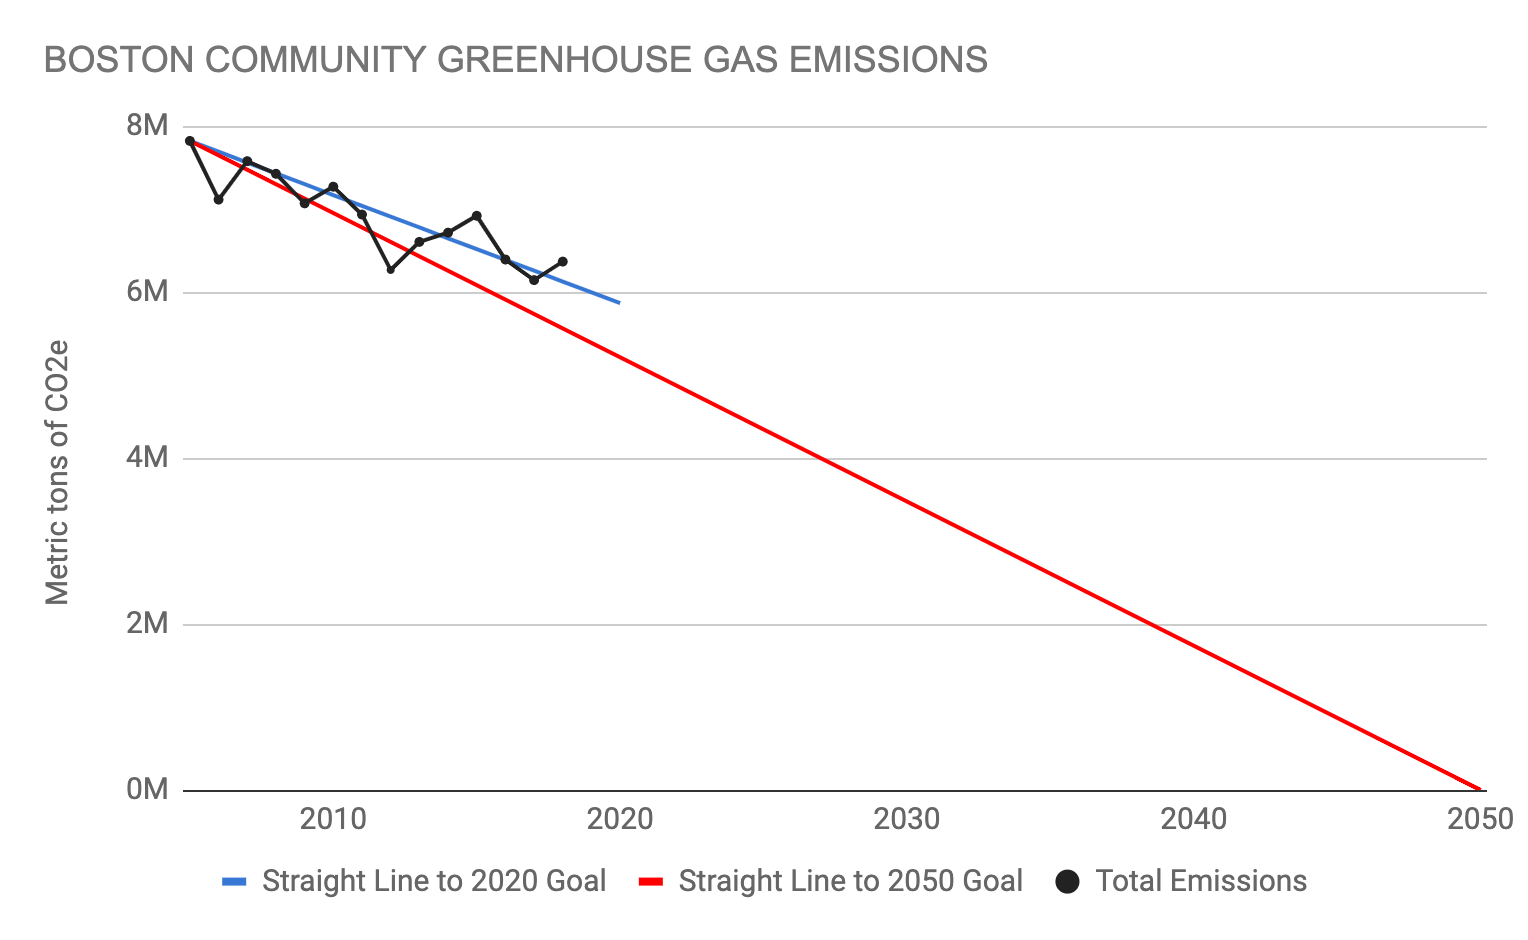 Boston 2005-2018 Community Greenhouse Gas Emissions